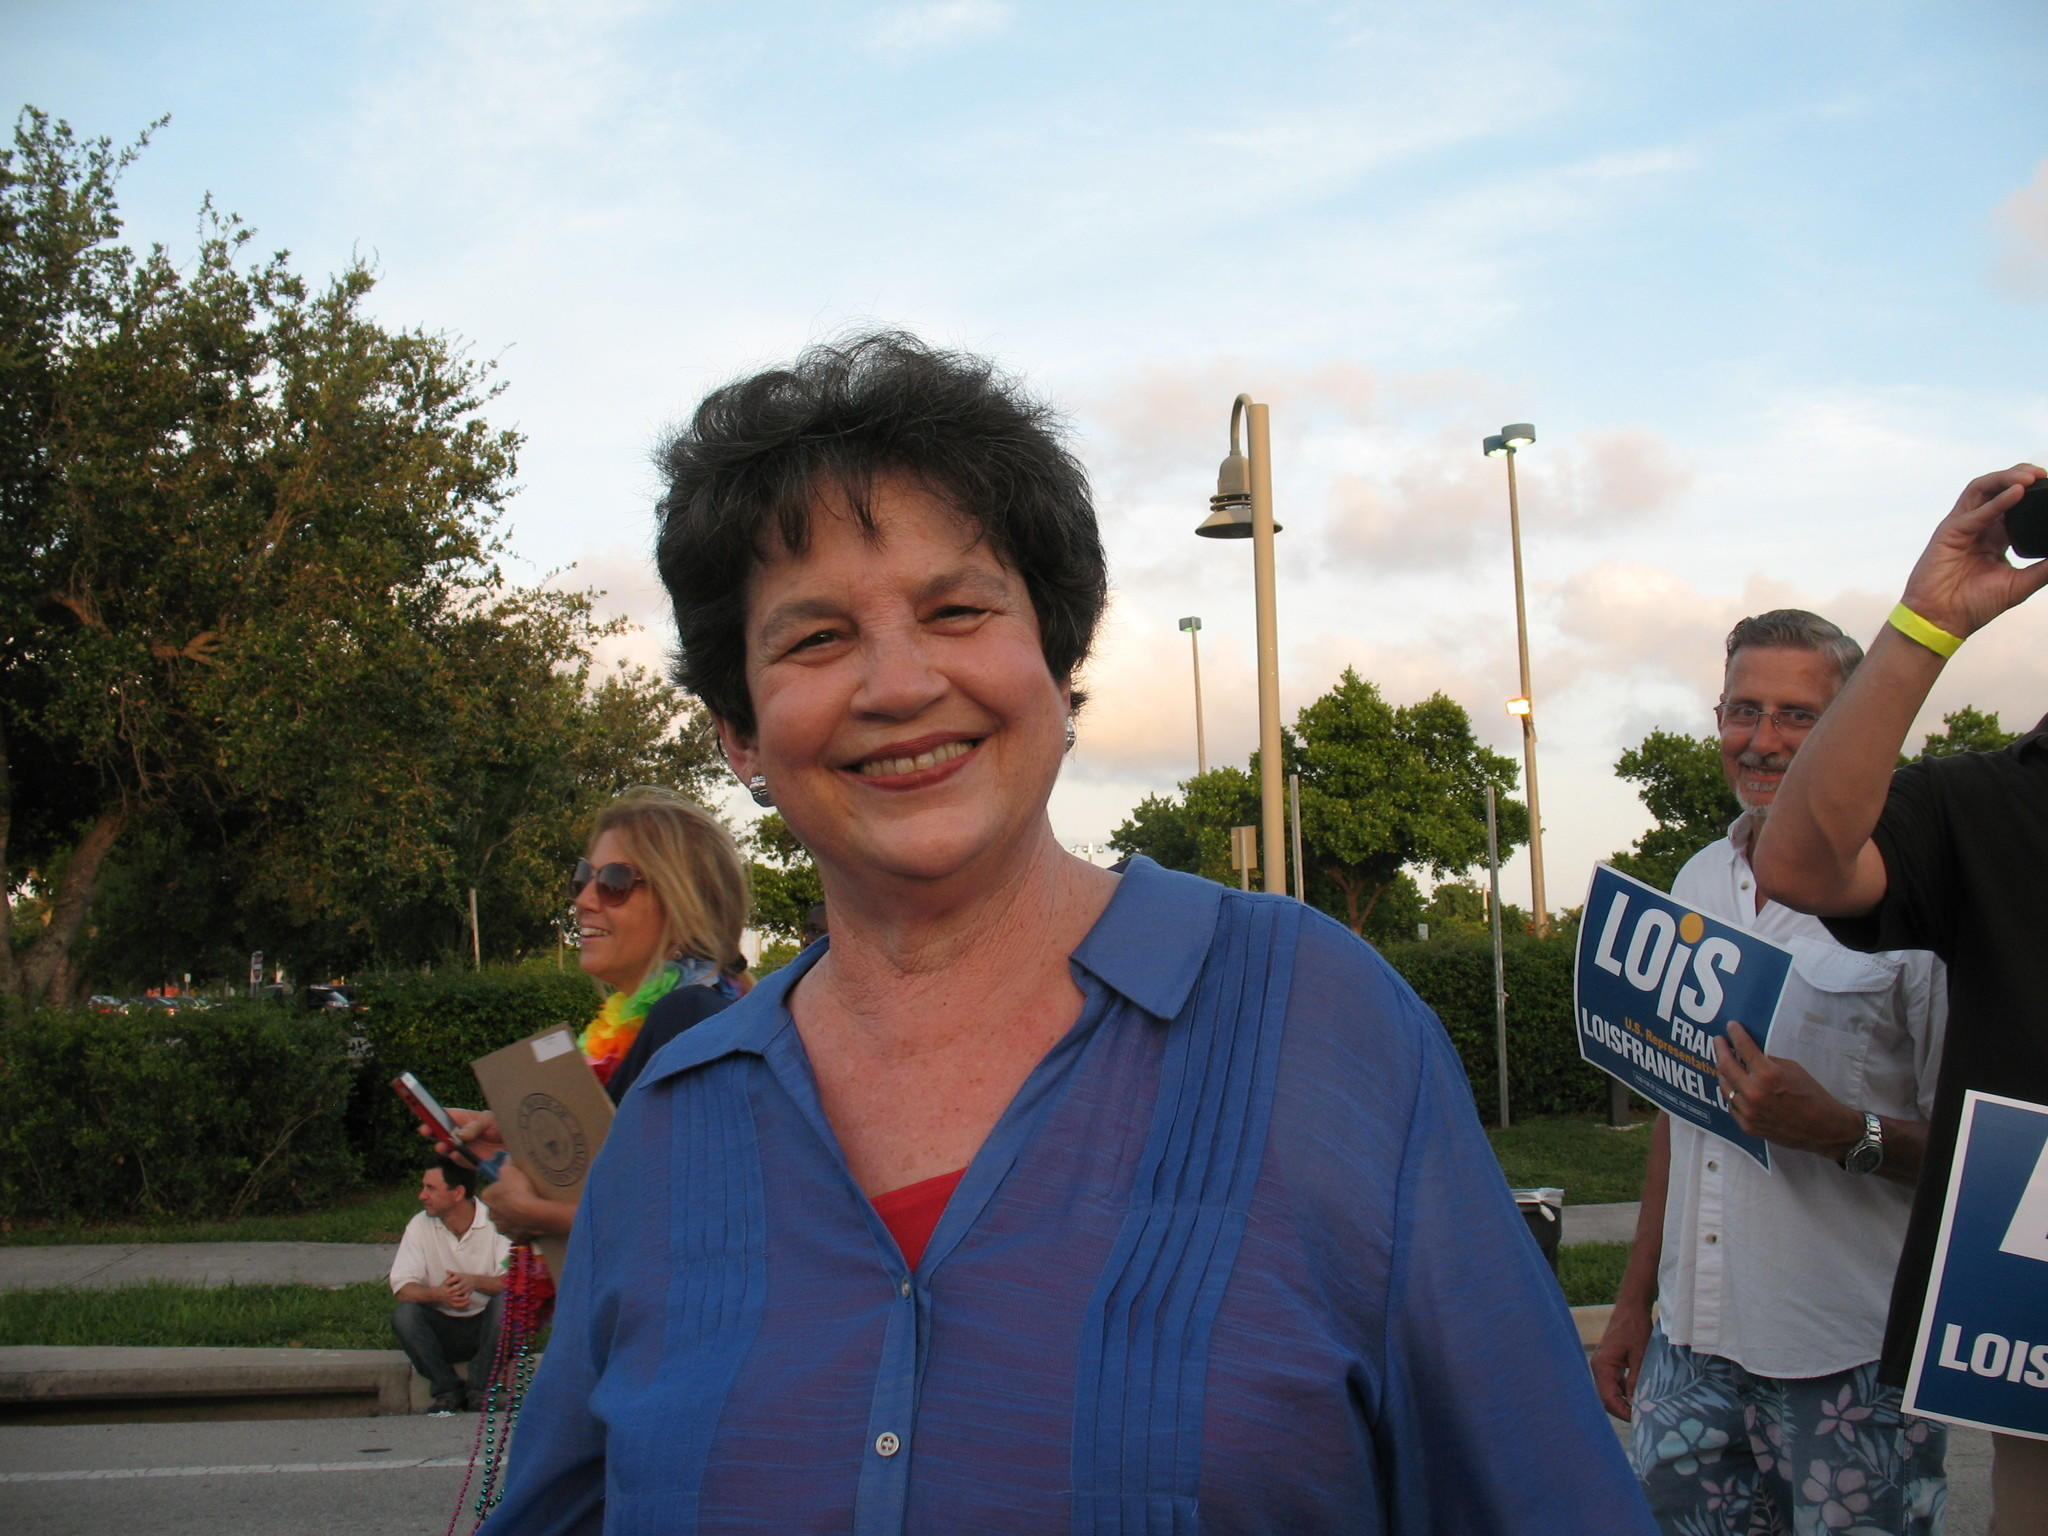 U.S. Rep. Lois Frankel at gay pride parade in Wilton Manors.